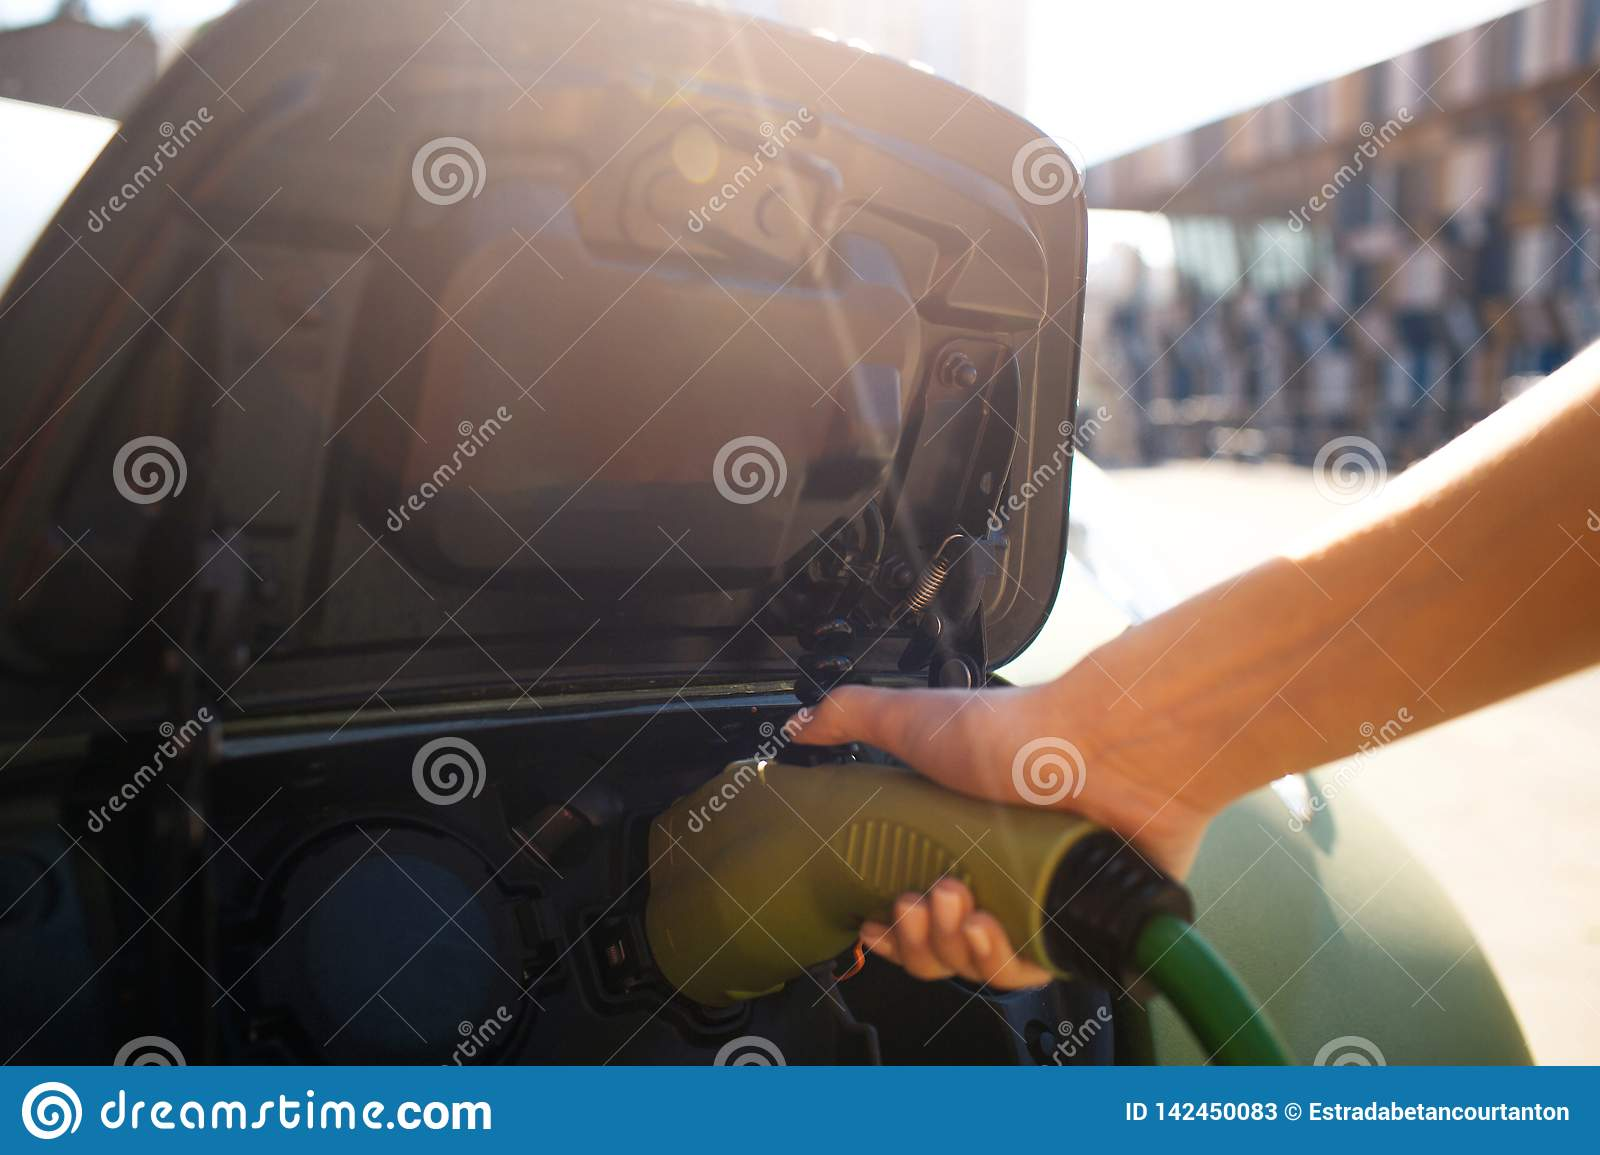 Electric vehicle charging station. Male hand charging an electric car with the power cable supply plugged in. Eco